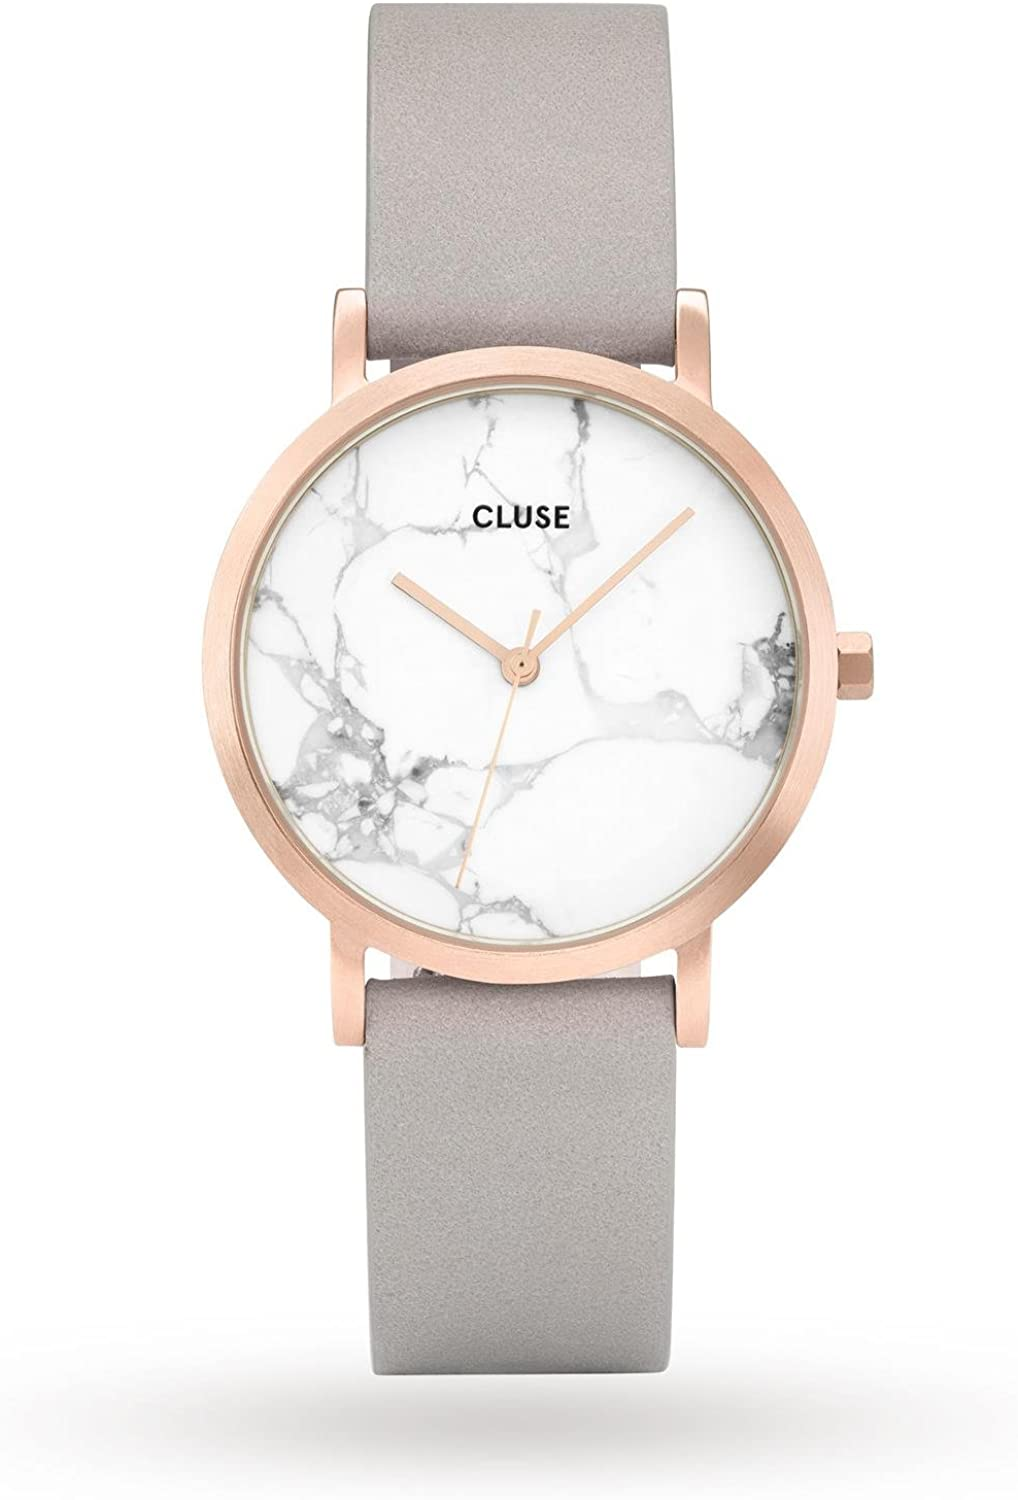 CLUSE Womens Analogue Classic Quartz Connected Wrist Watch with Leather Strap CL40103